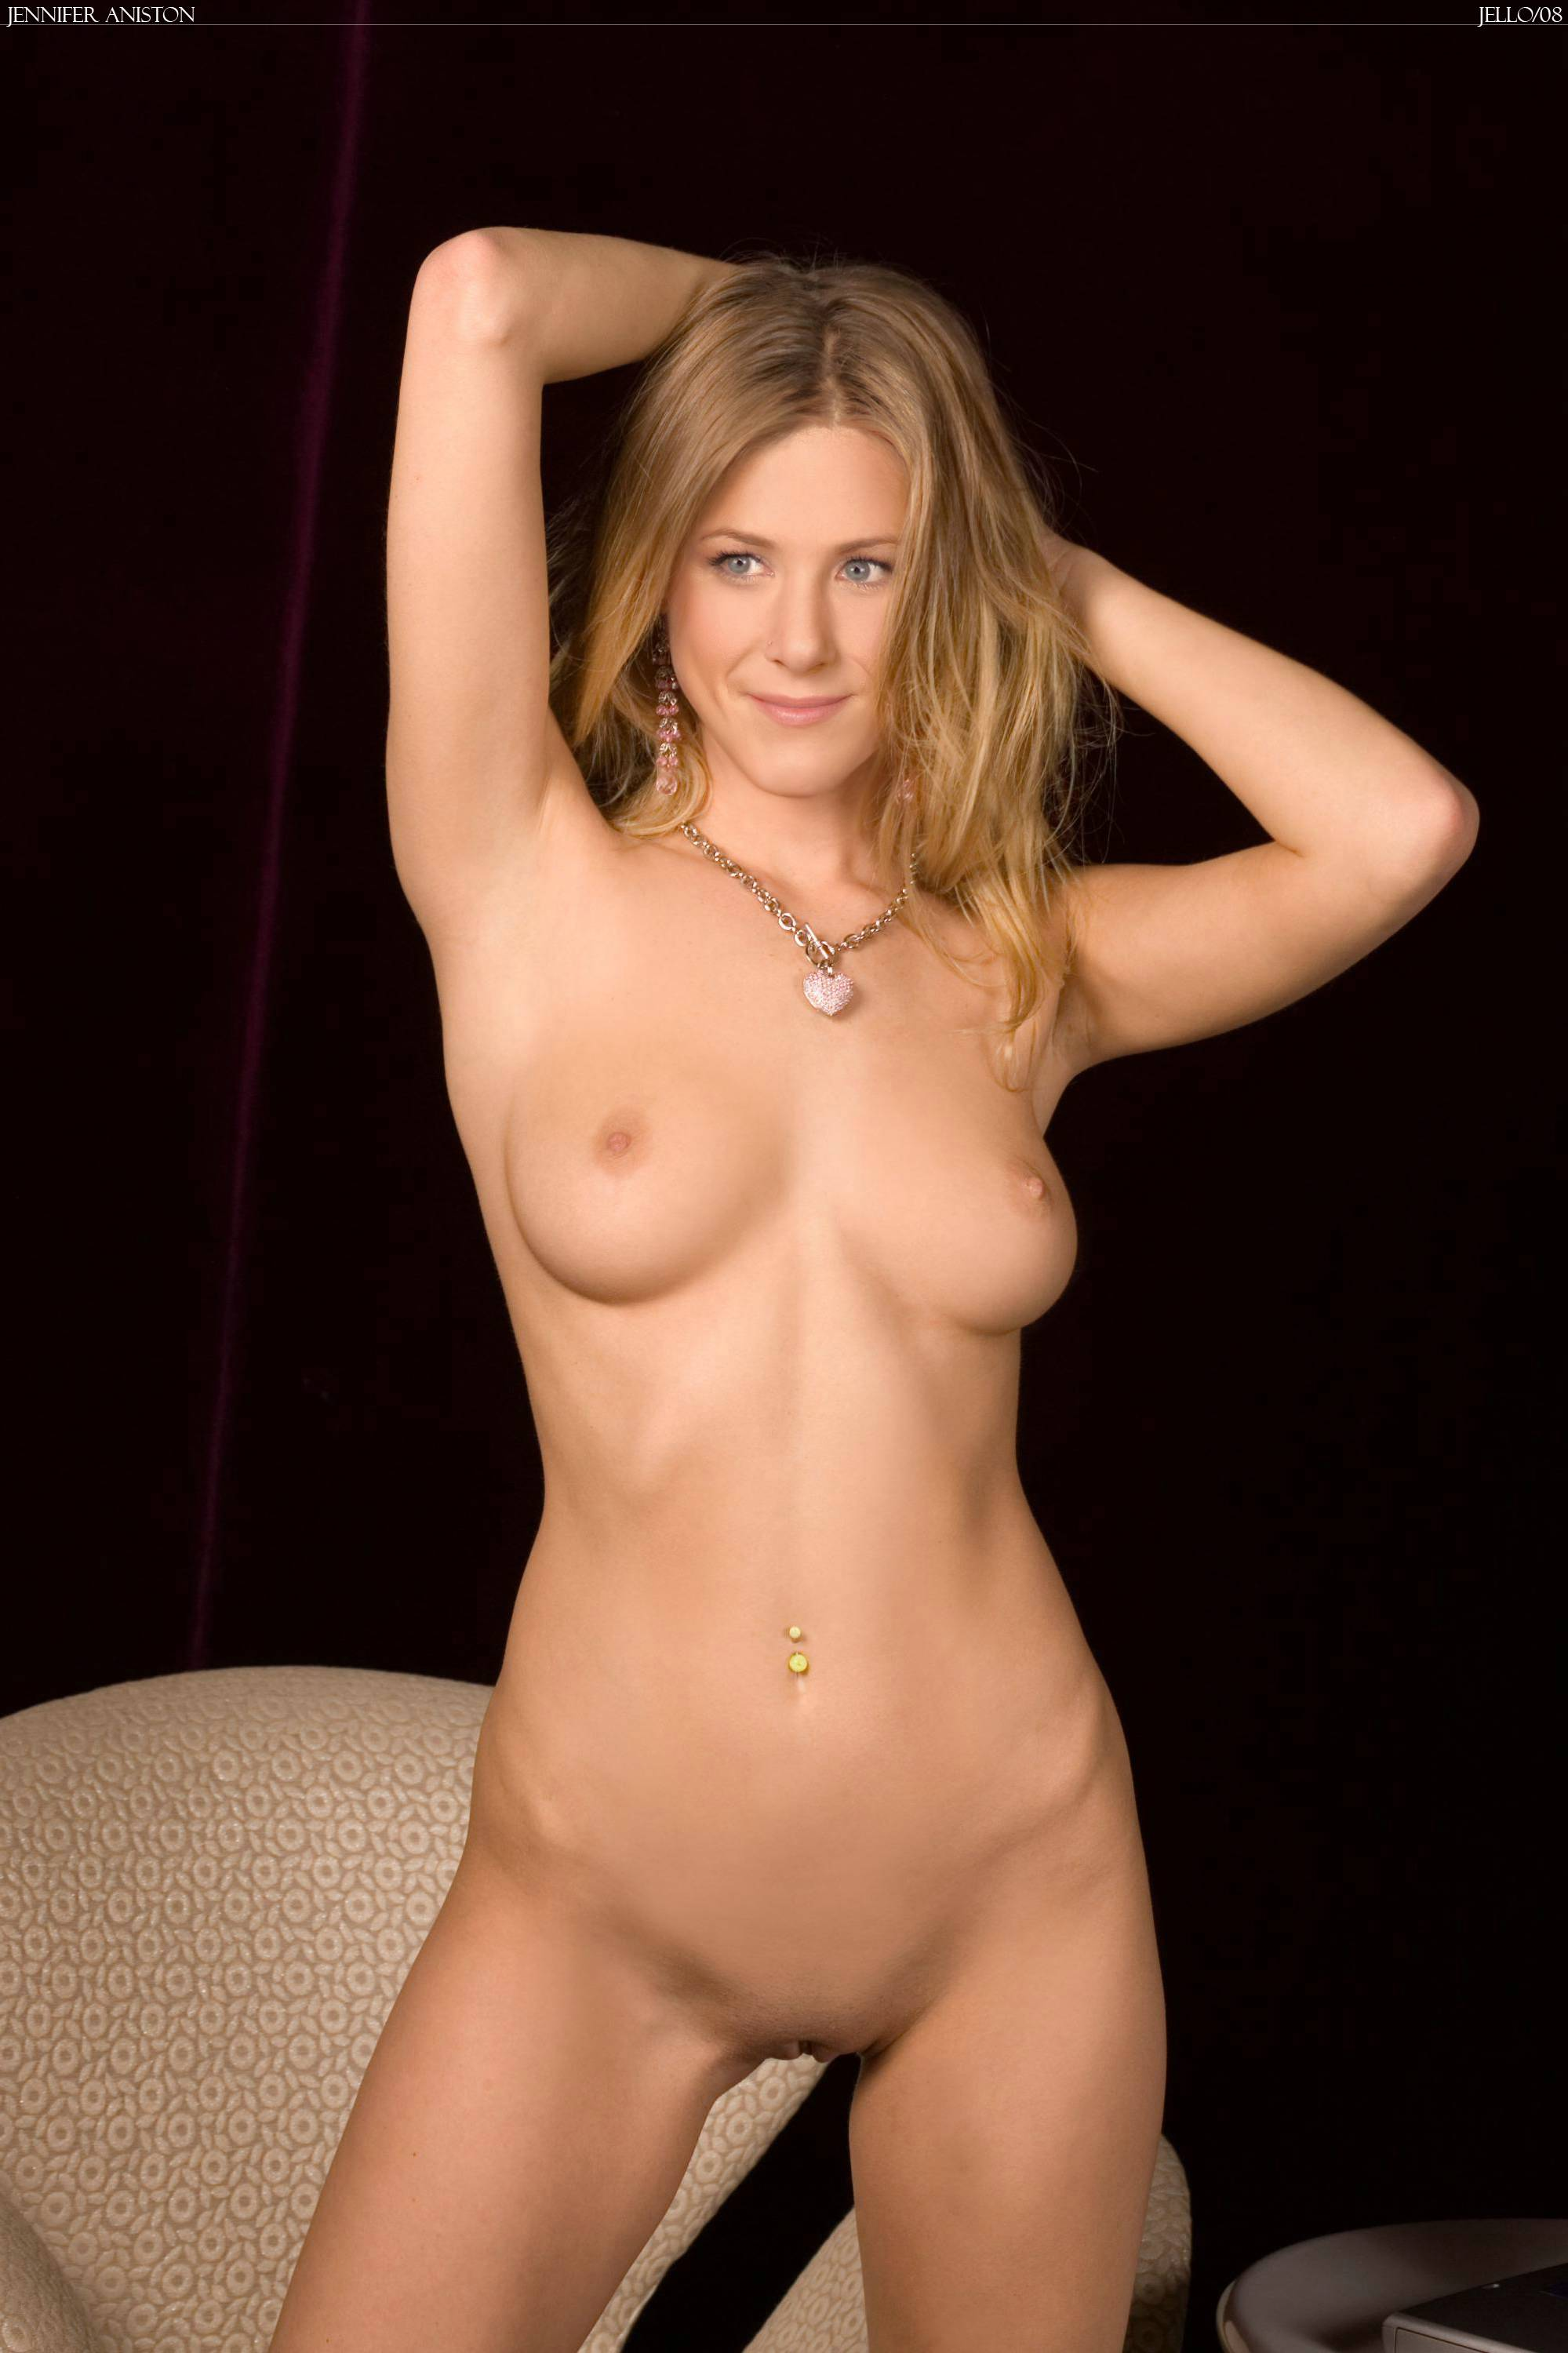 jennifer aniston fake nude image